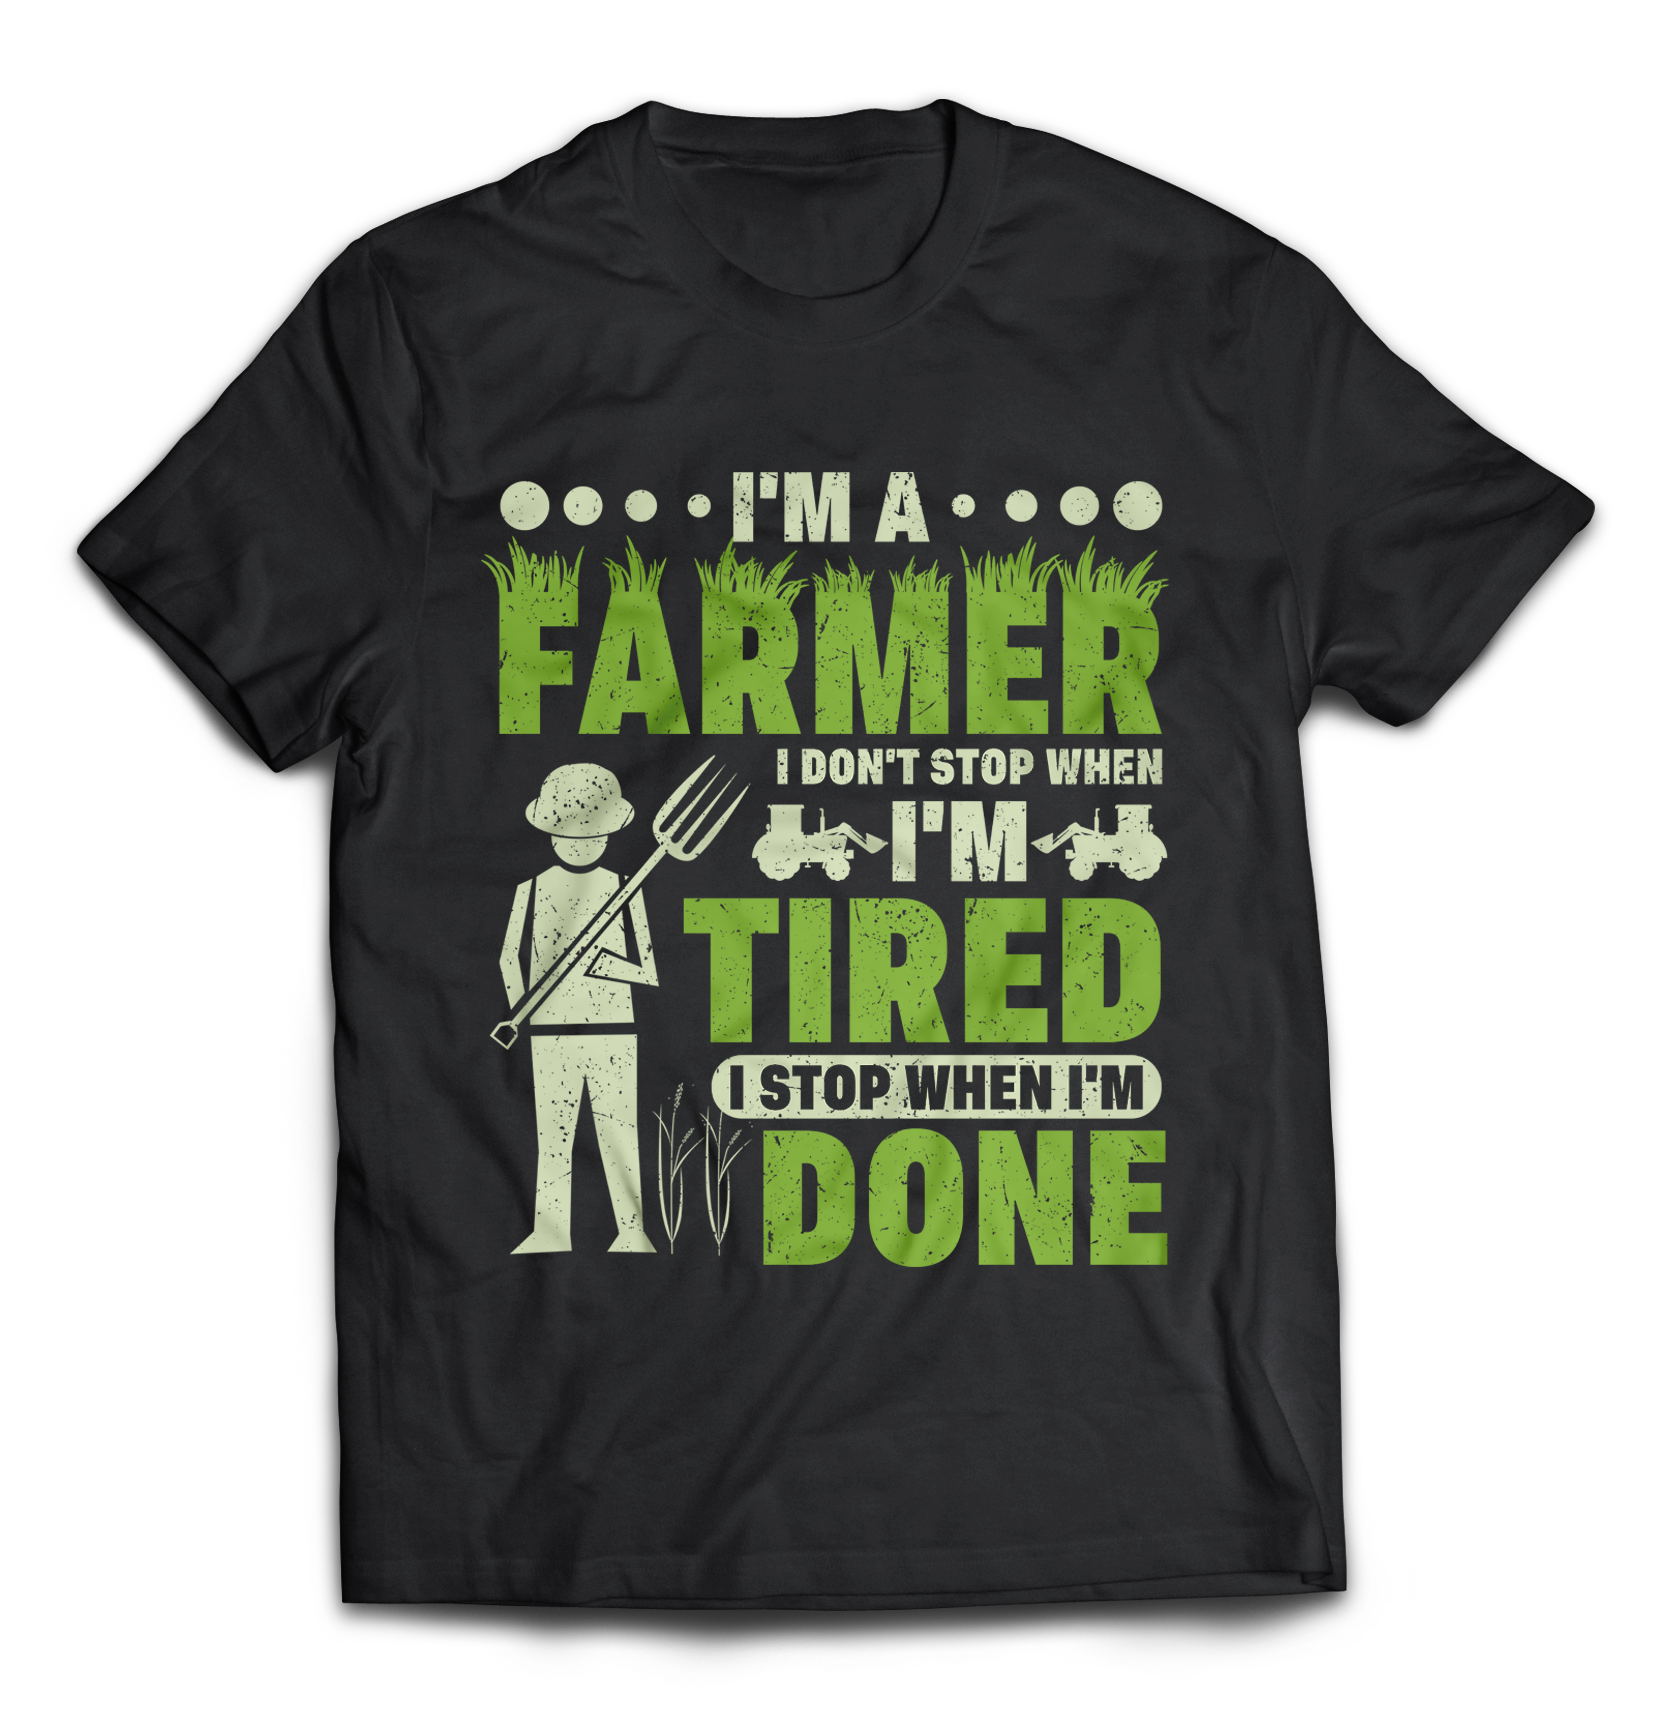 28de93e8 I'm A Farmer I Don't Stop When I'm Tired I Stop When I'm Done ...